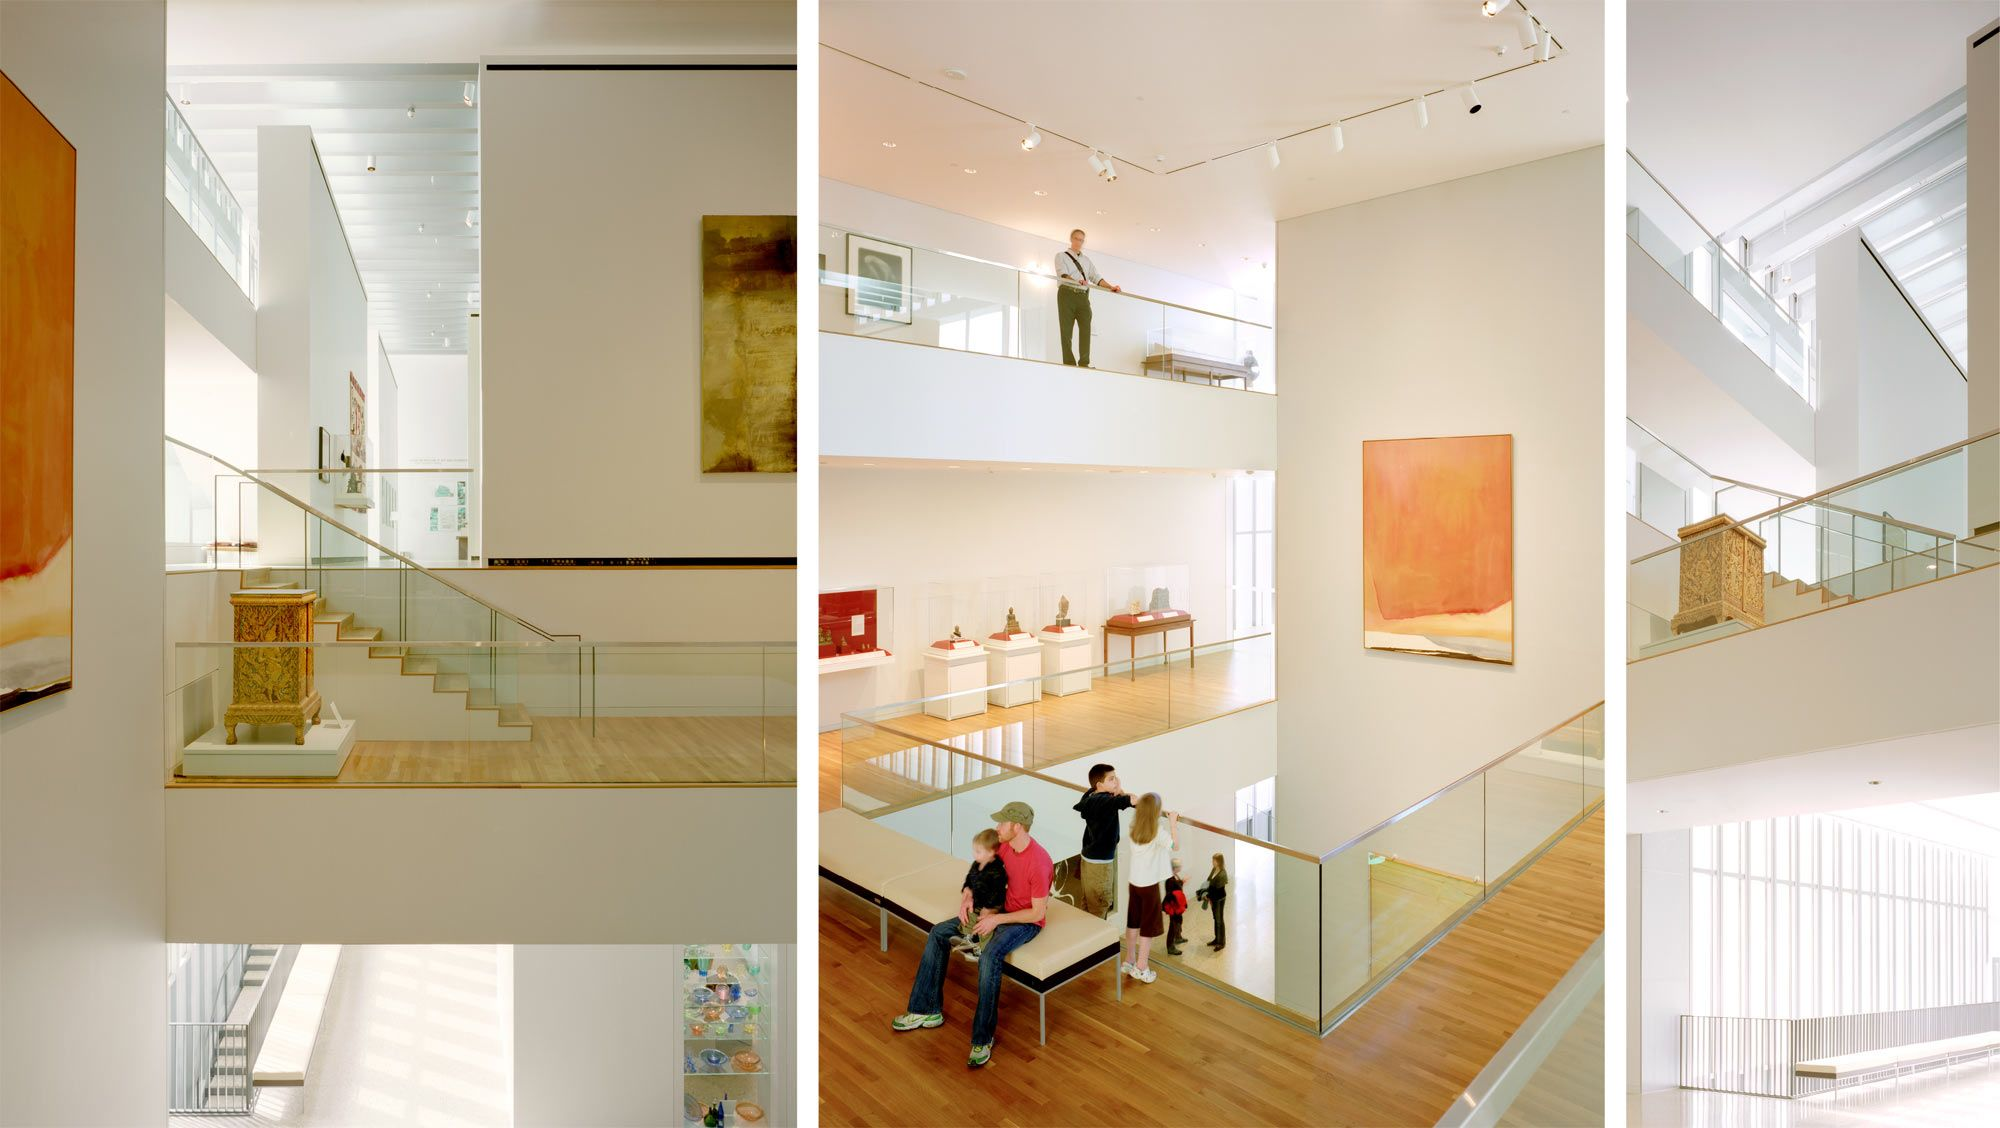 allied works architecture - University of Michigan Museum of Art